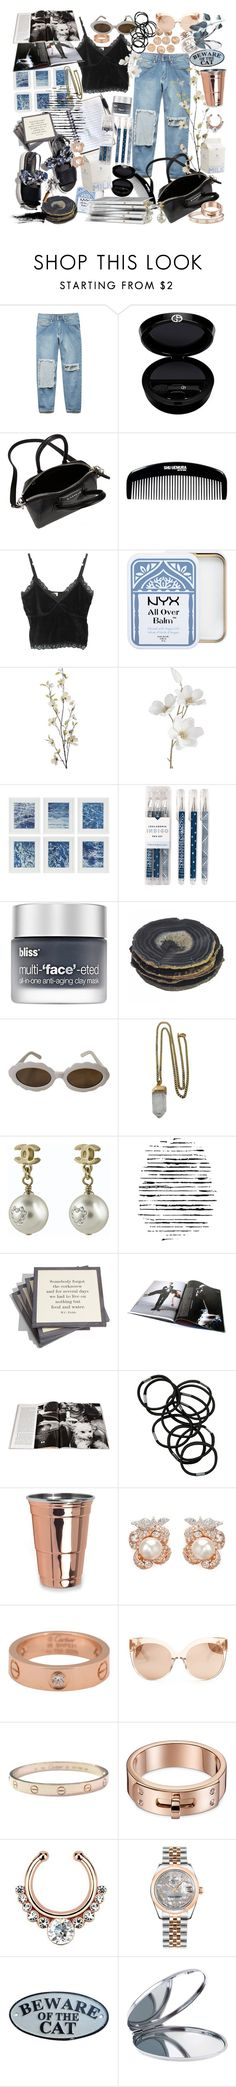 """""""aleah"""" by spxxx ❤ liked on Polyvore featuring Forever 21, Giorgio Armani, Givenchy, shu uemura, Pier 1 Imports, Williams-Sonoma, Chronicle Books, Bliss, Moschino and Lacey Ryan"""